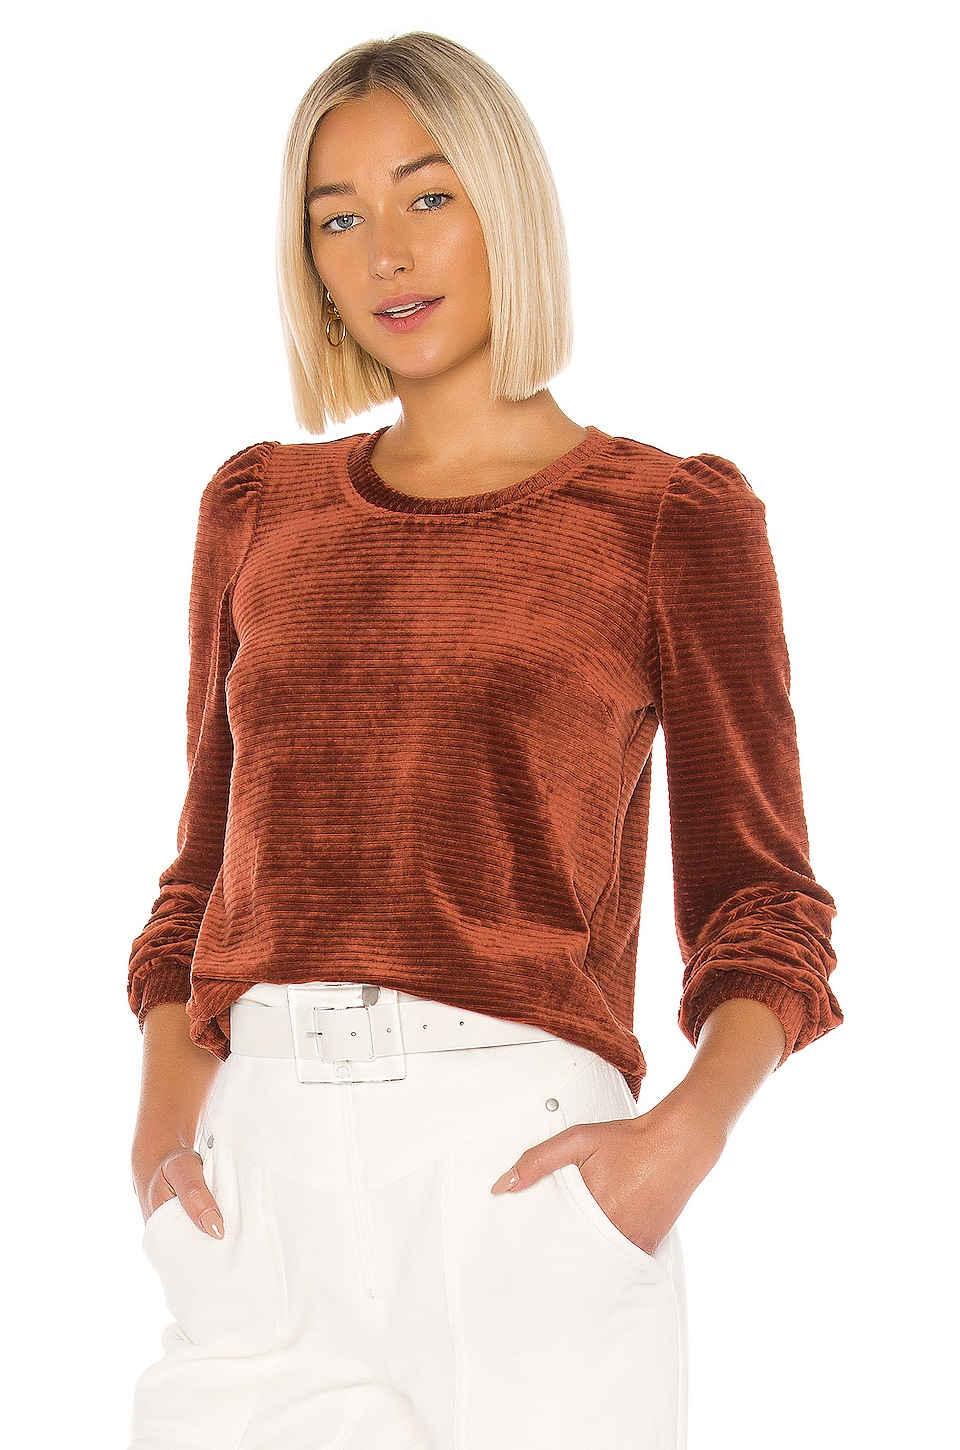 HEARTLOOM Allie Pullover in Terracotta